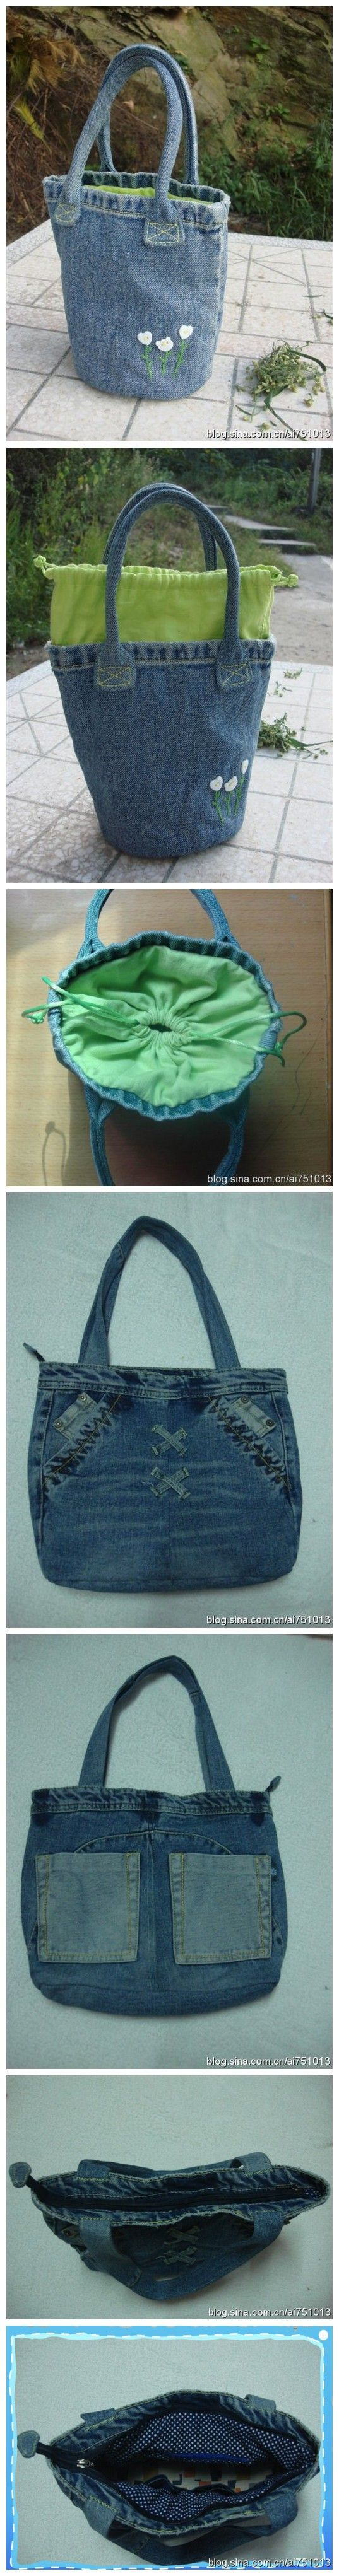 bags from repurposed jeans